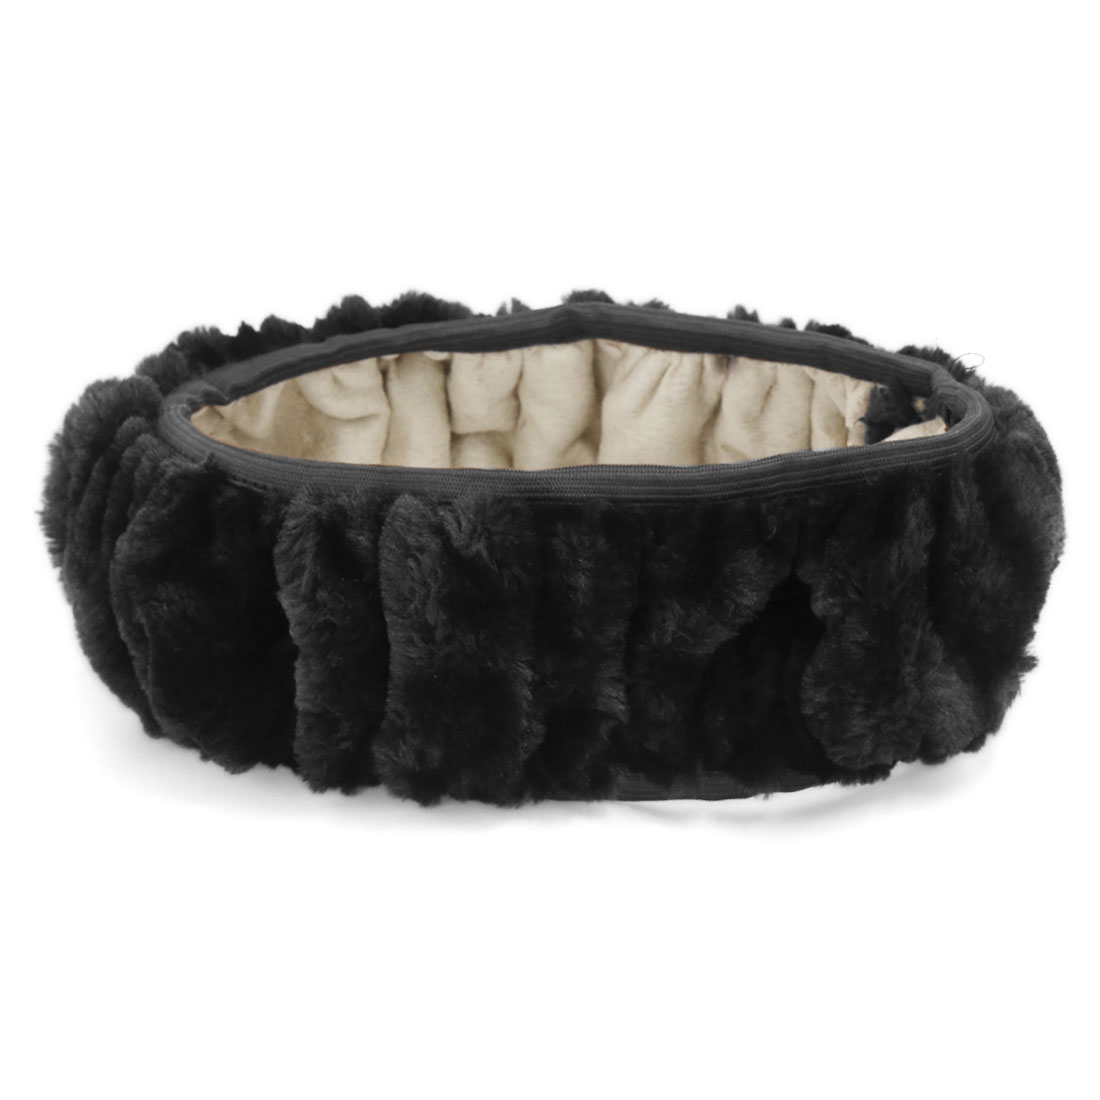 Black Warm Fluffy Soft Plush Flexible Car Steering Wheel Cover for Winter